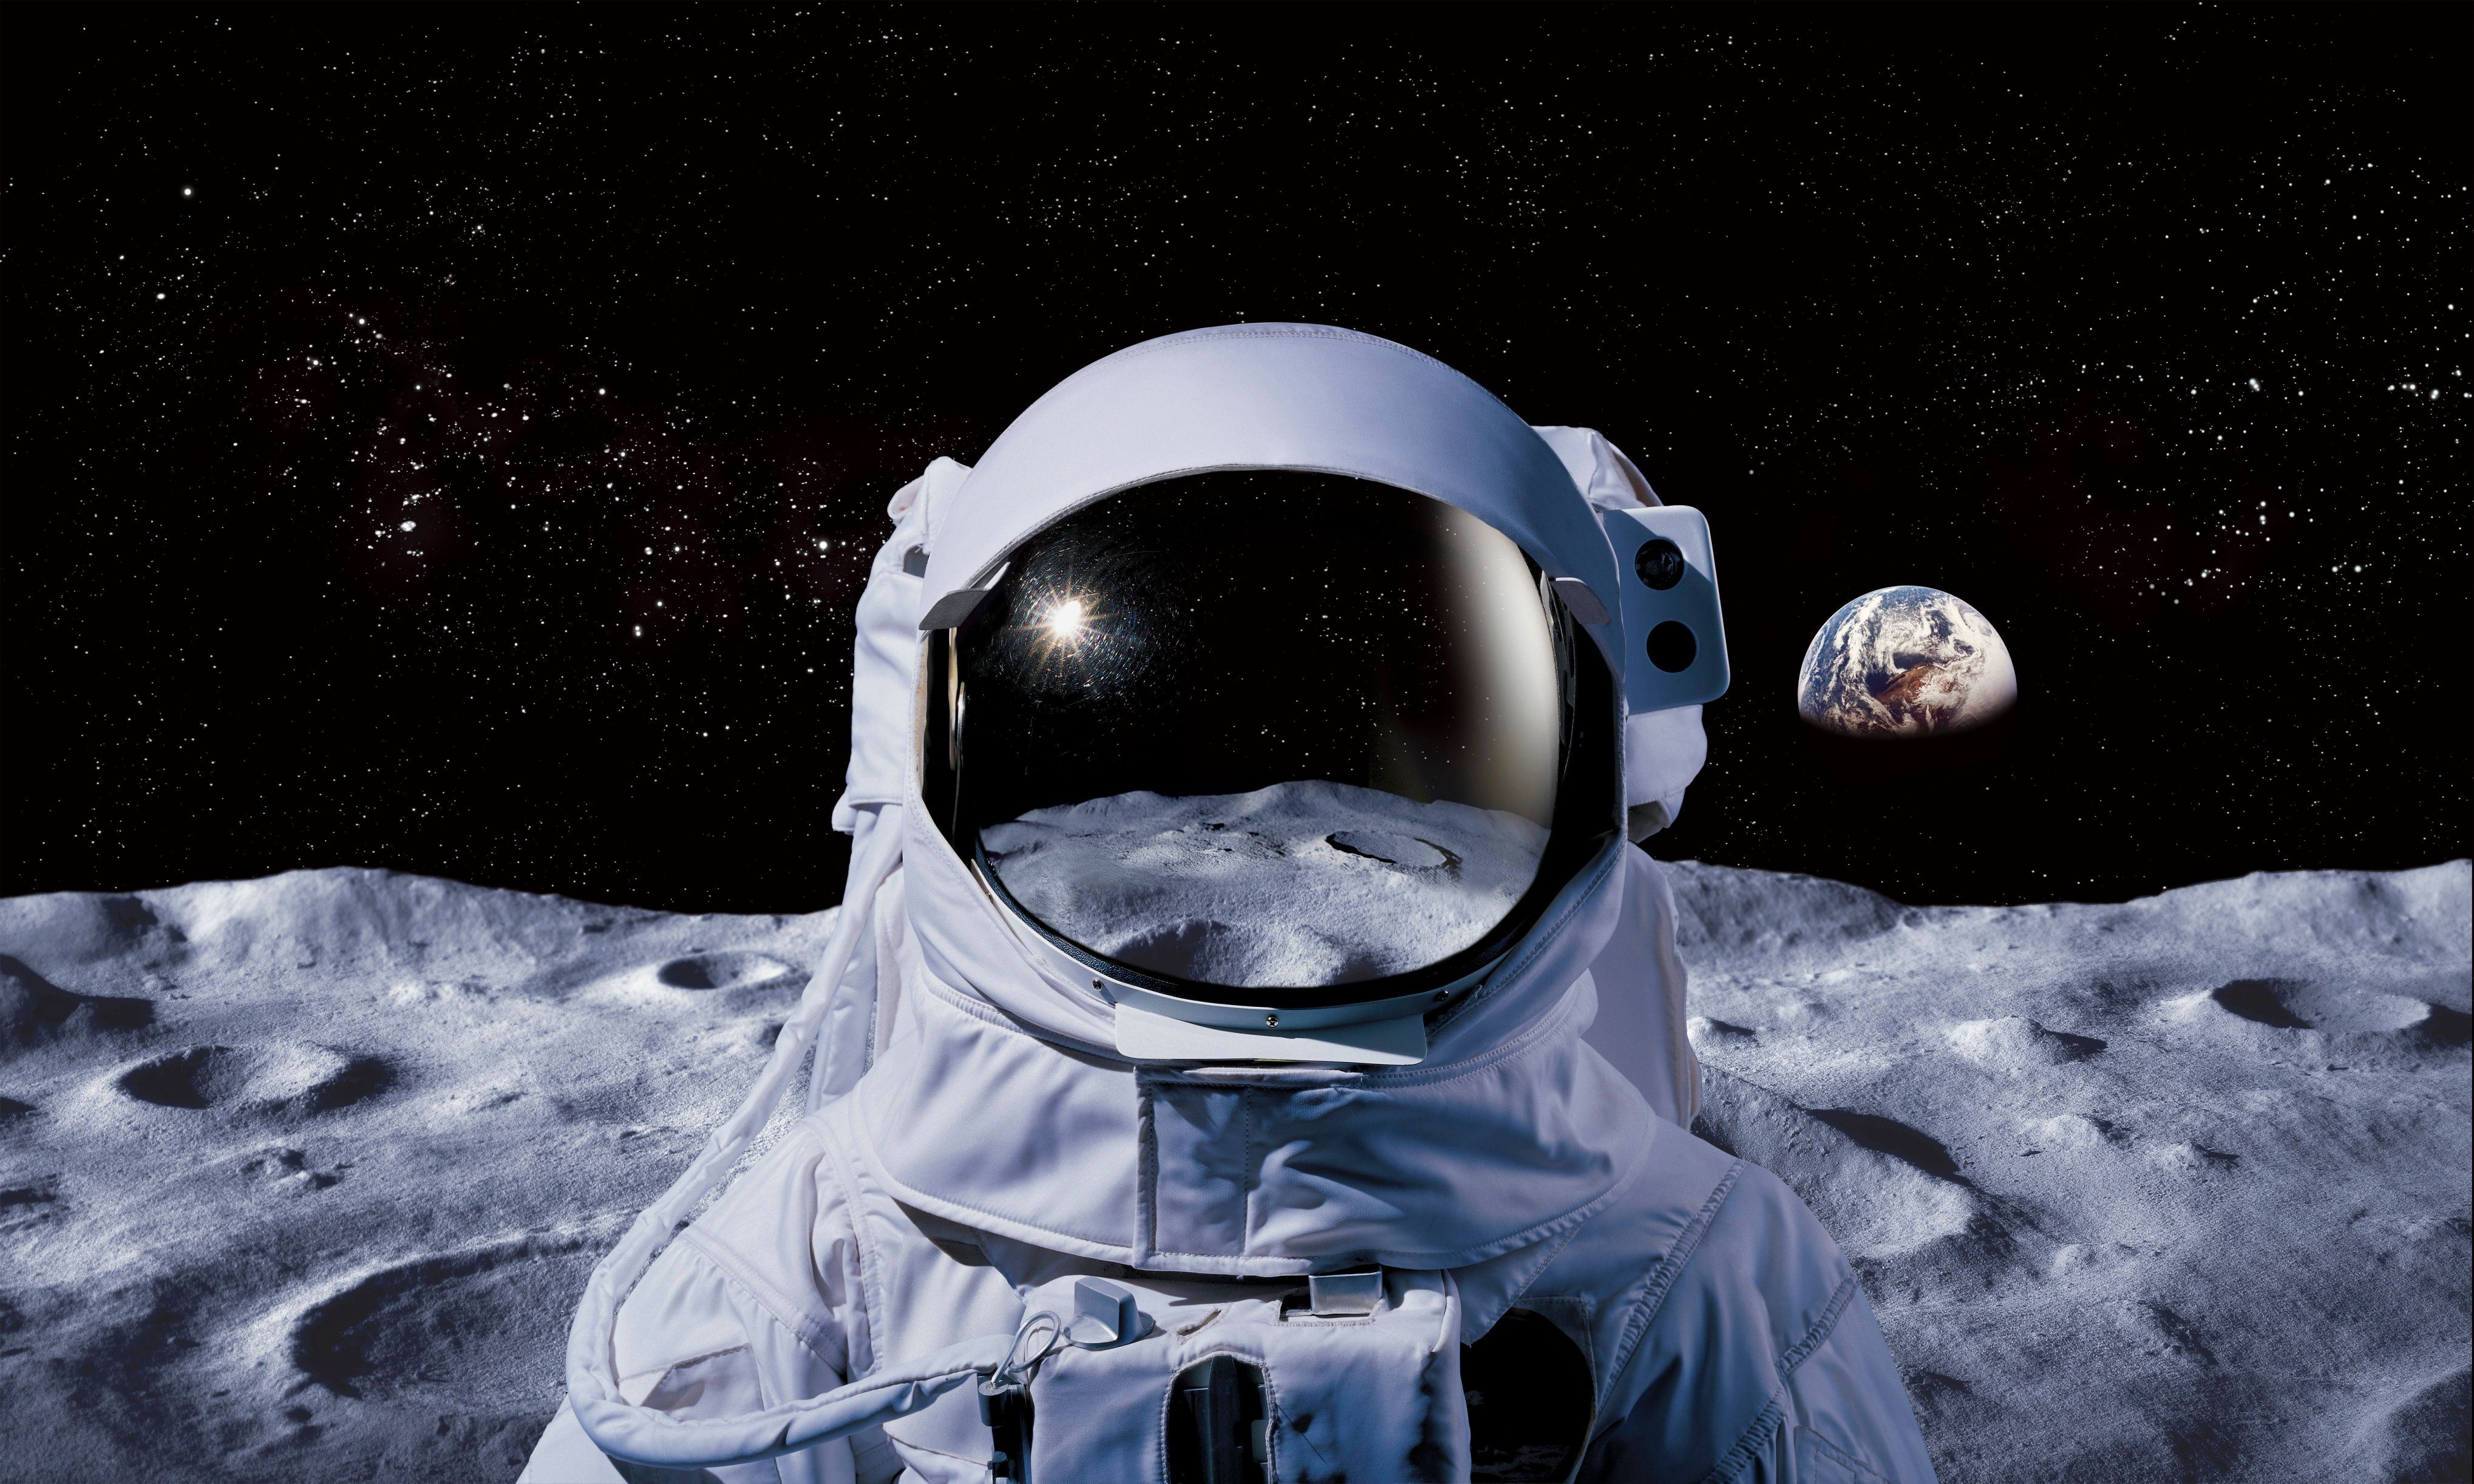 Astronaut on moon with earth in background